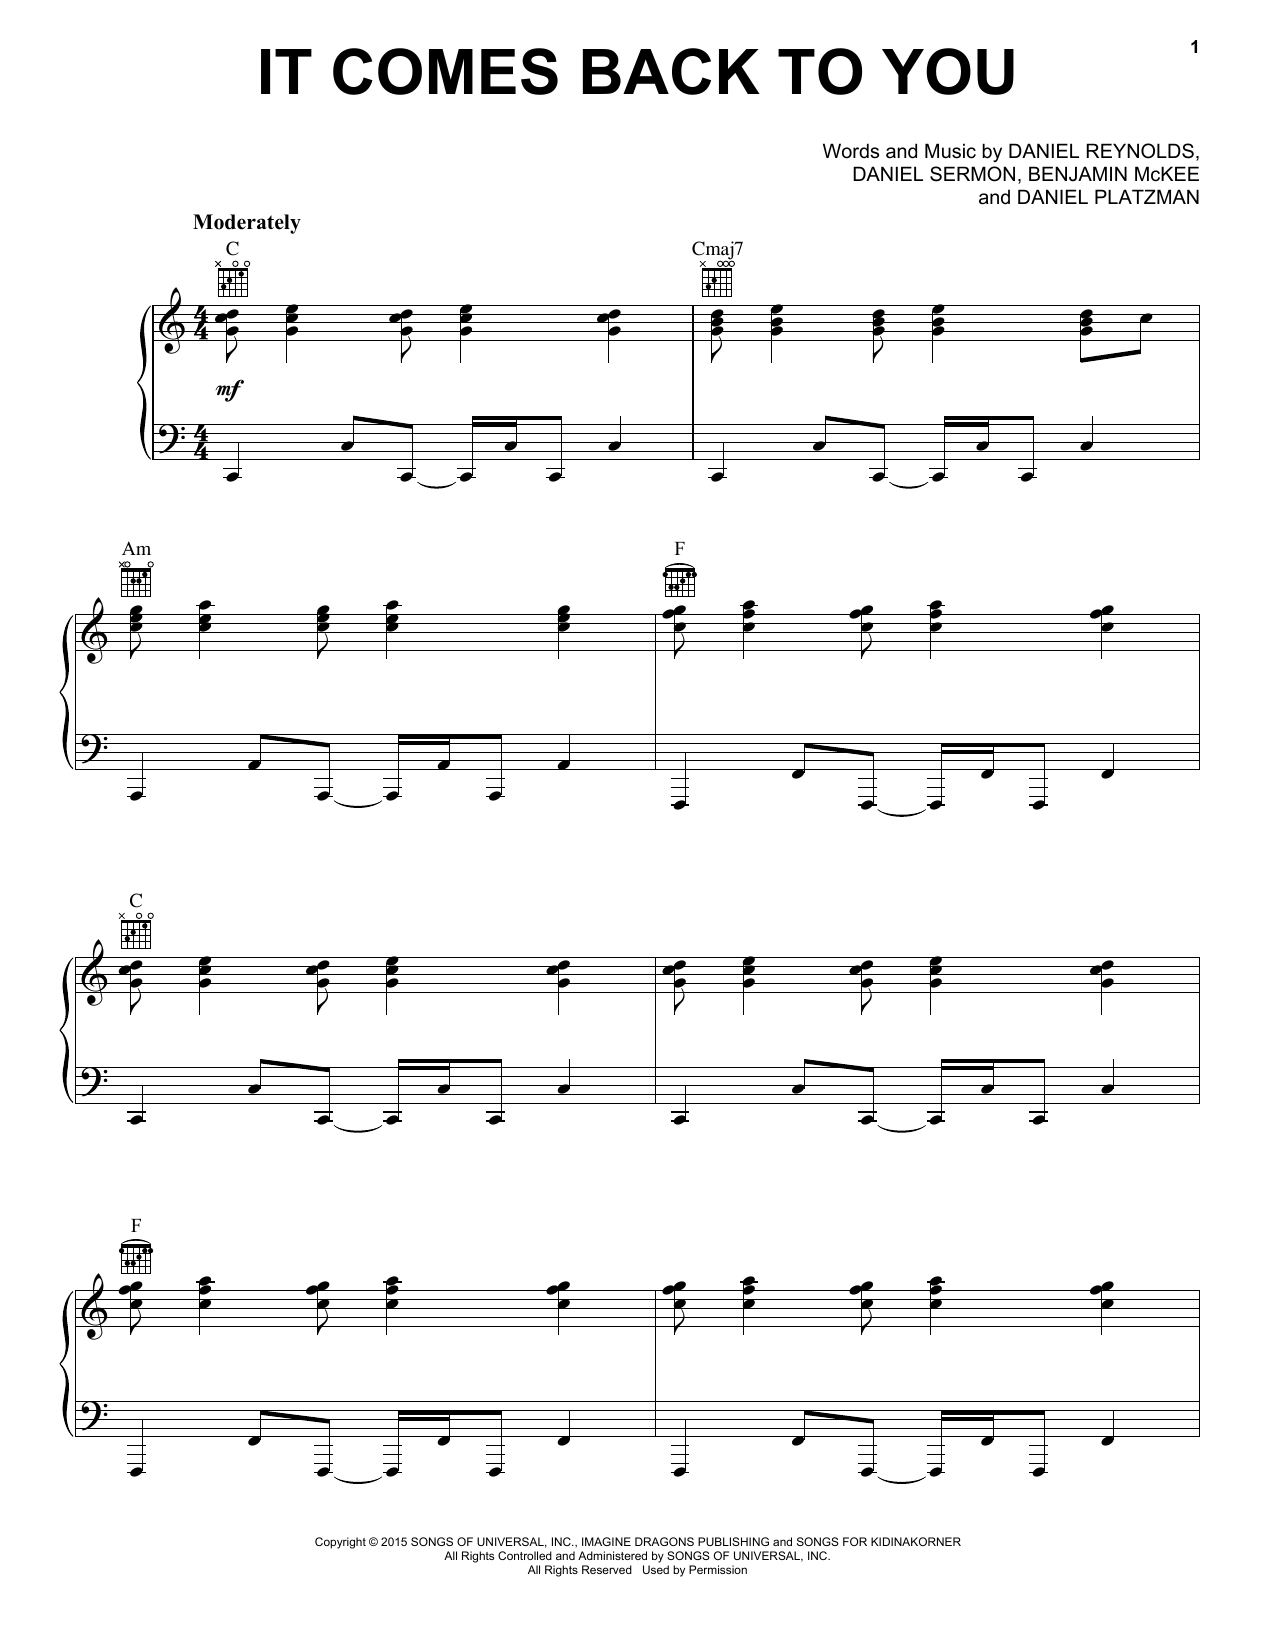 Imagine Dragons It Comes Back To You sheet music notes and chords